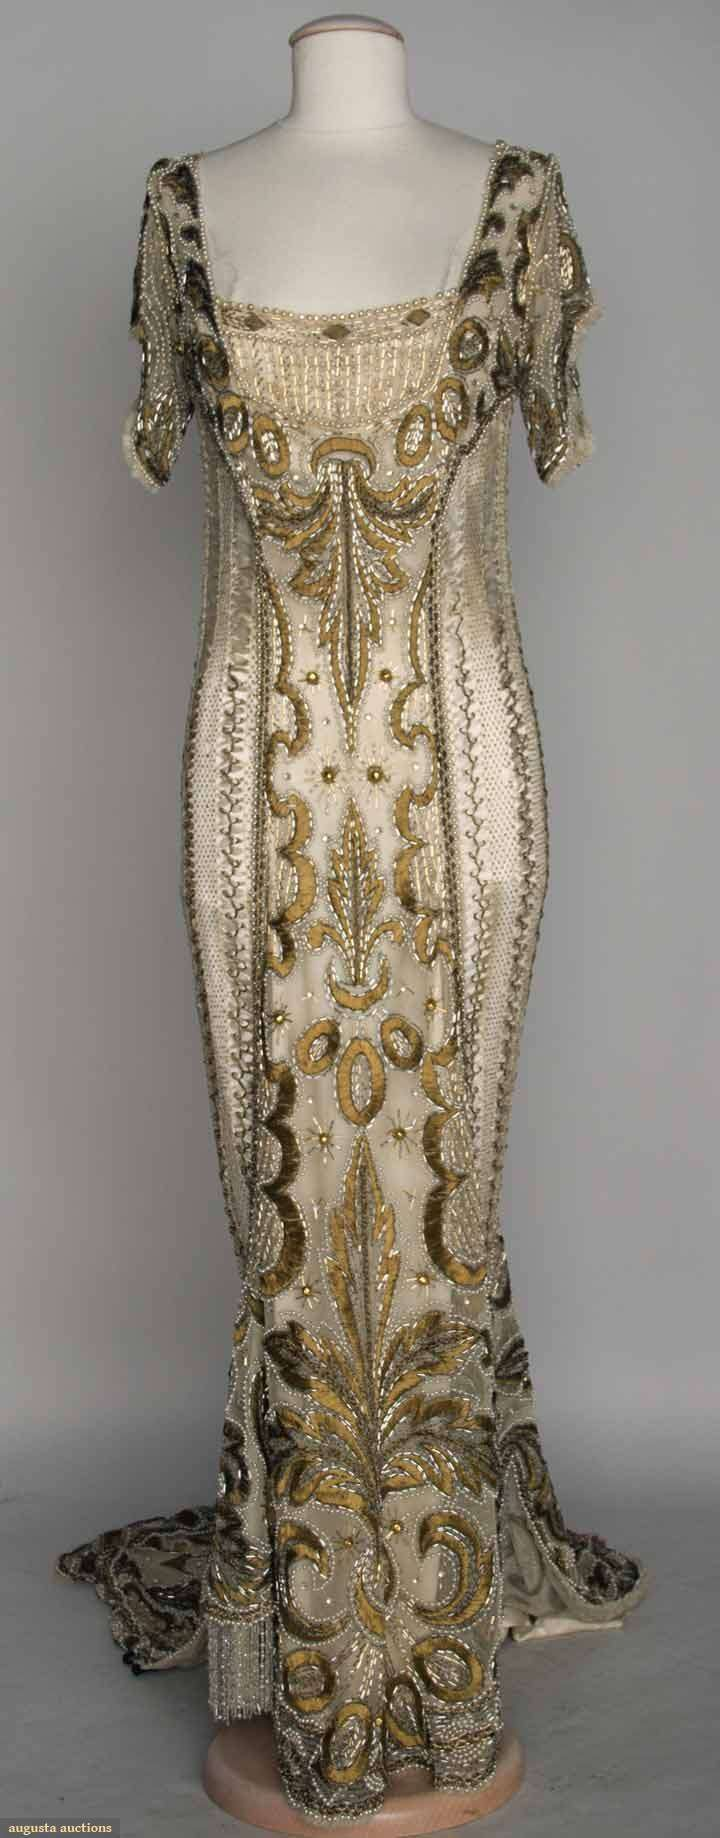 Gold Beaded Ball Gown, C. 1908, Augusta Auctions, November 13, 2013 – NYC, Lot 307